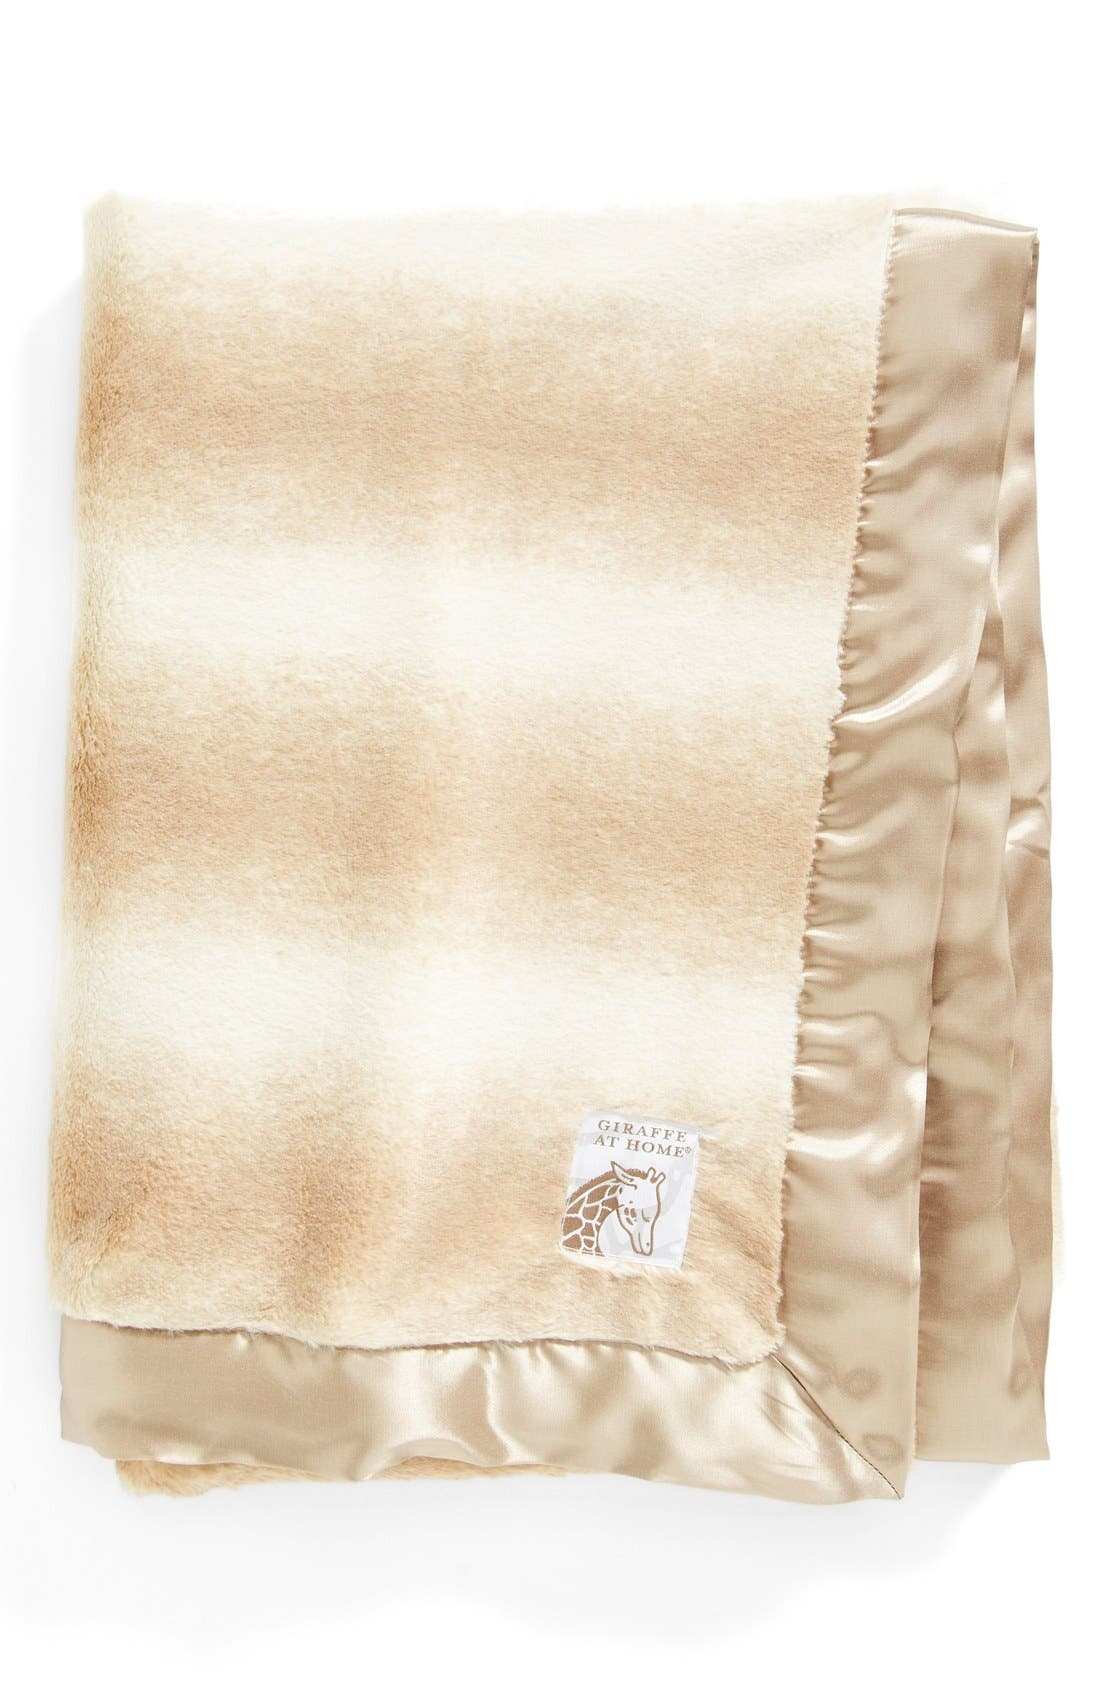 Giraffe at Home Oversized 'Luxe Soufflé' Throw